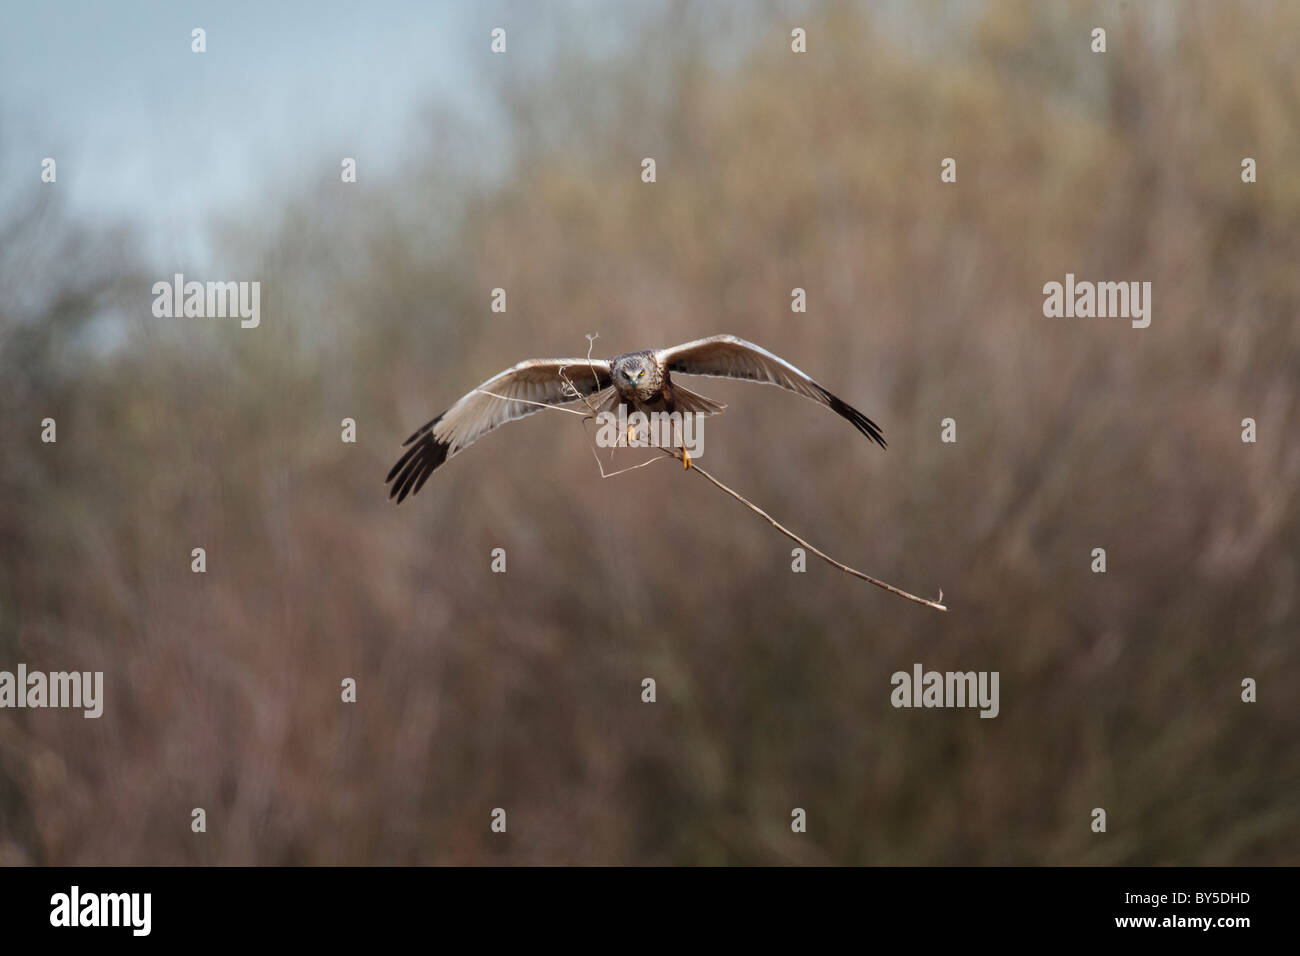 Male marsh harrier in flight carrying twigs to make a nest, Stock Photo